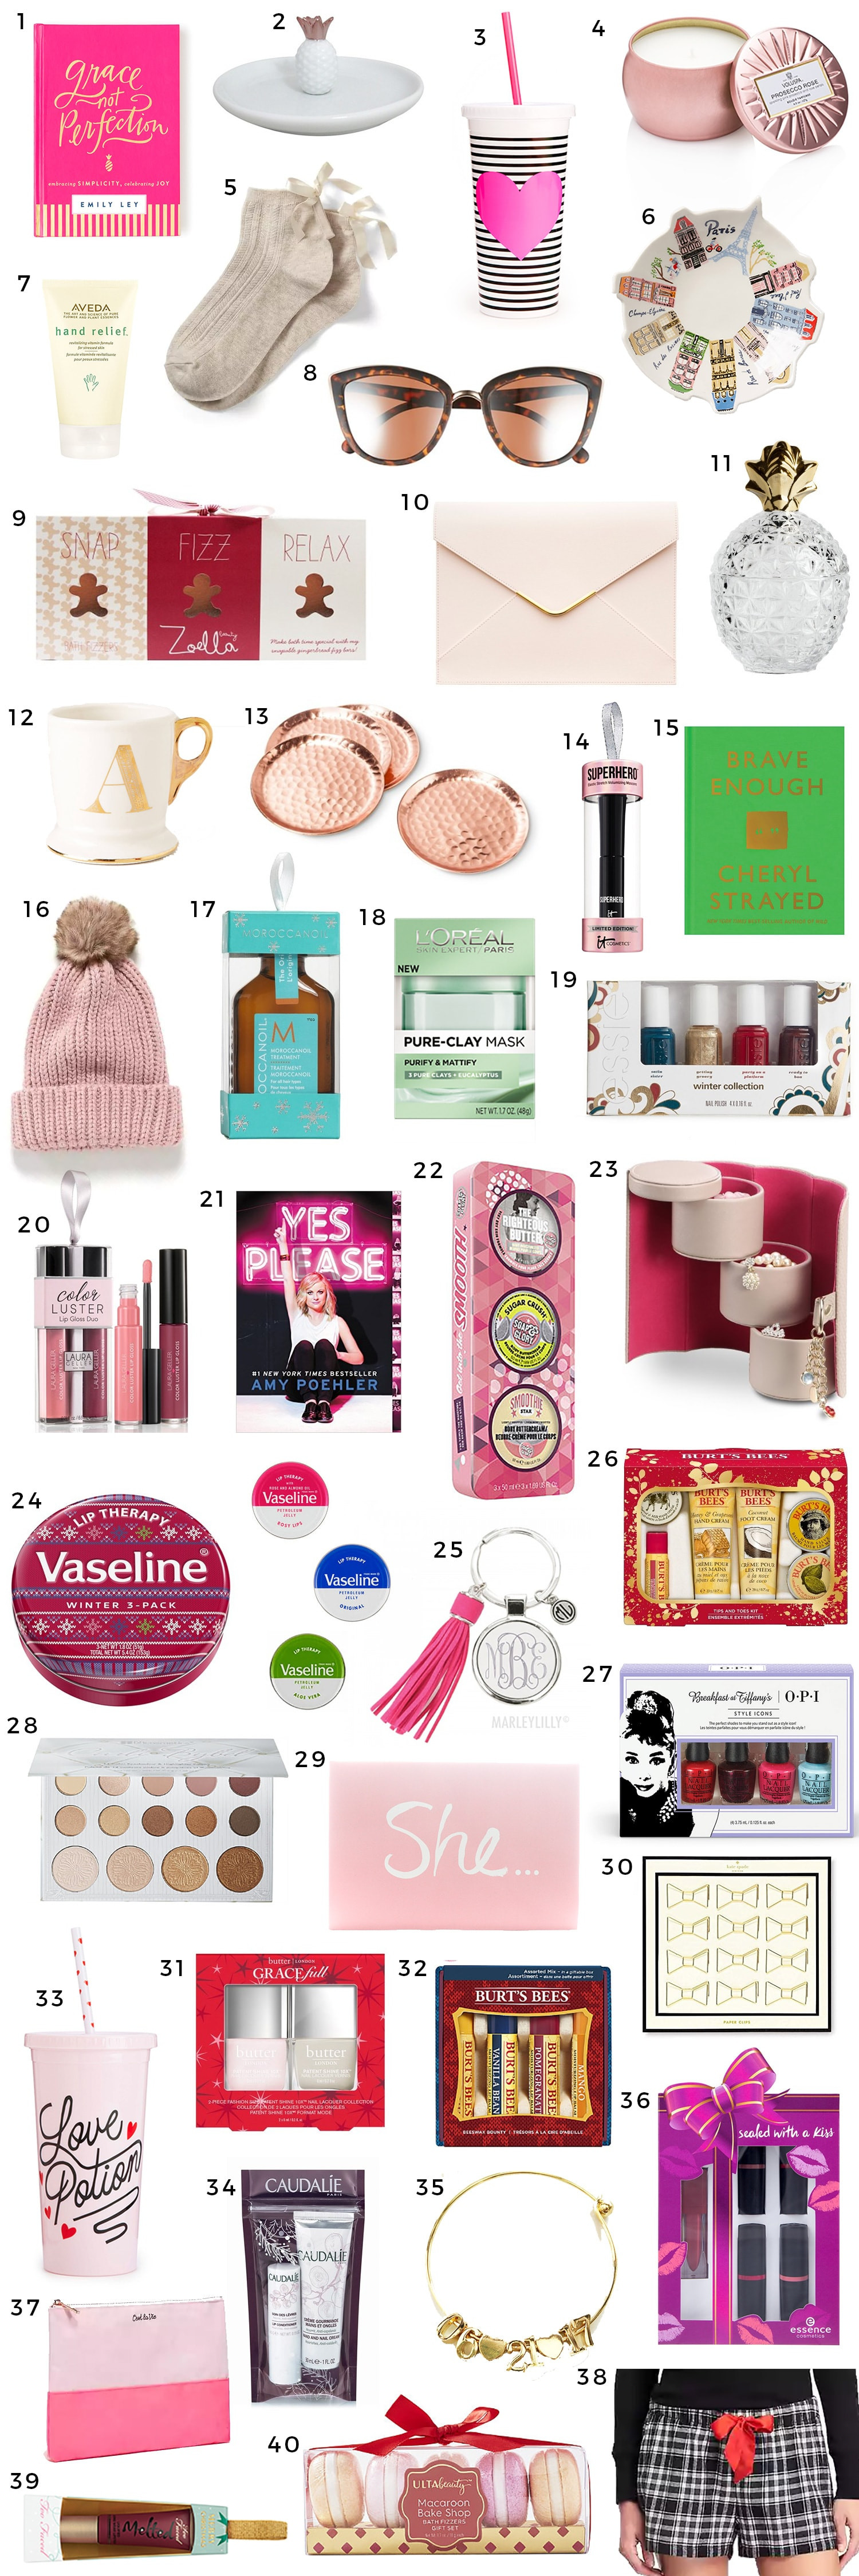 Great Holiday Gift Ideas  The Best Christmas Gift Ideas for Women Under $15